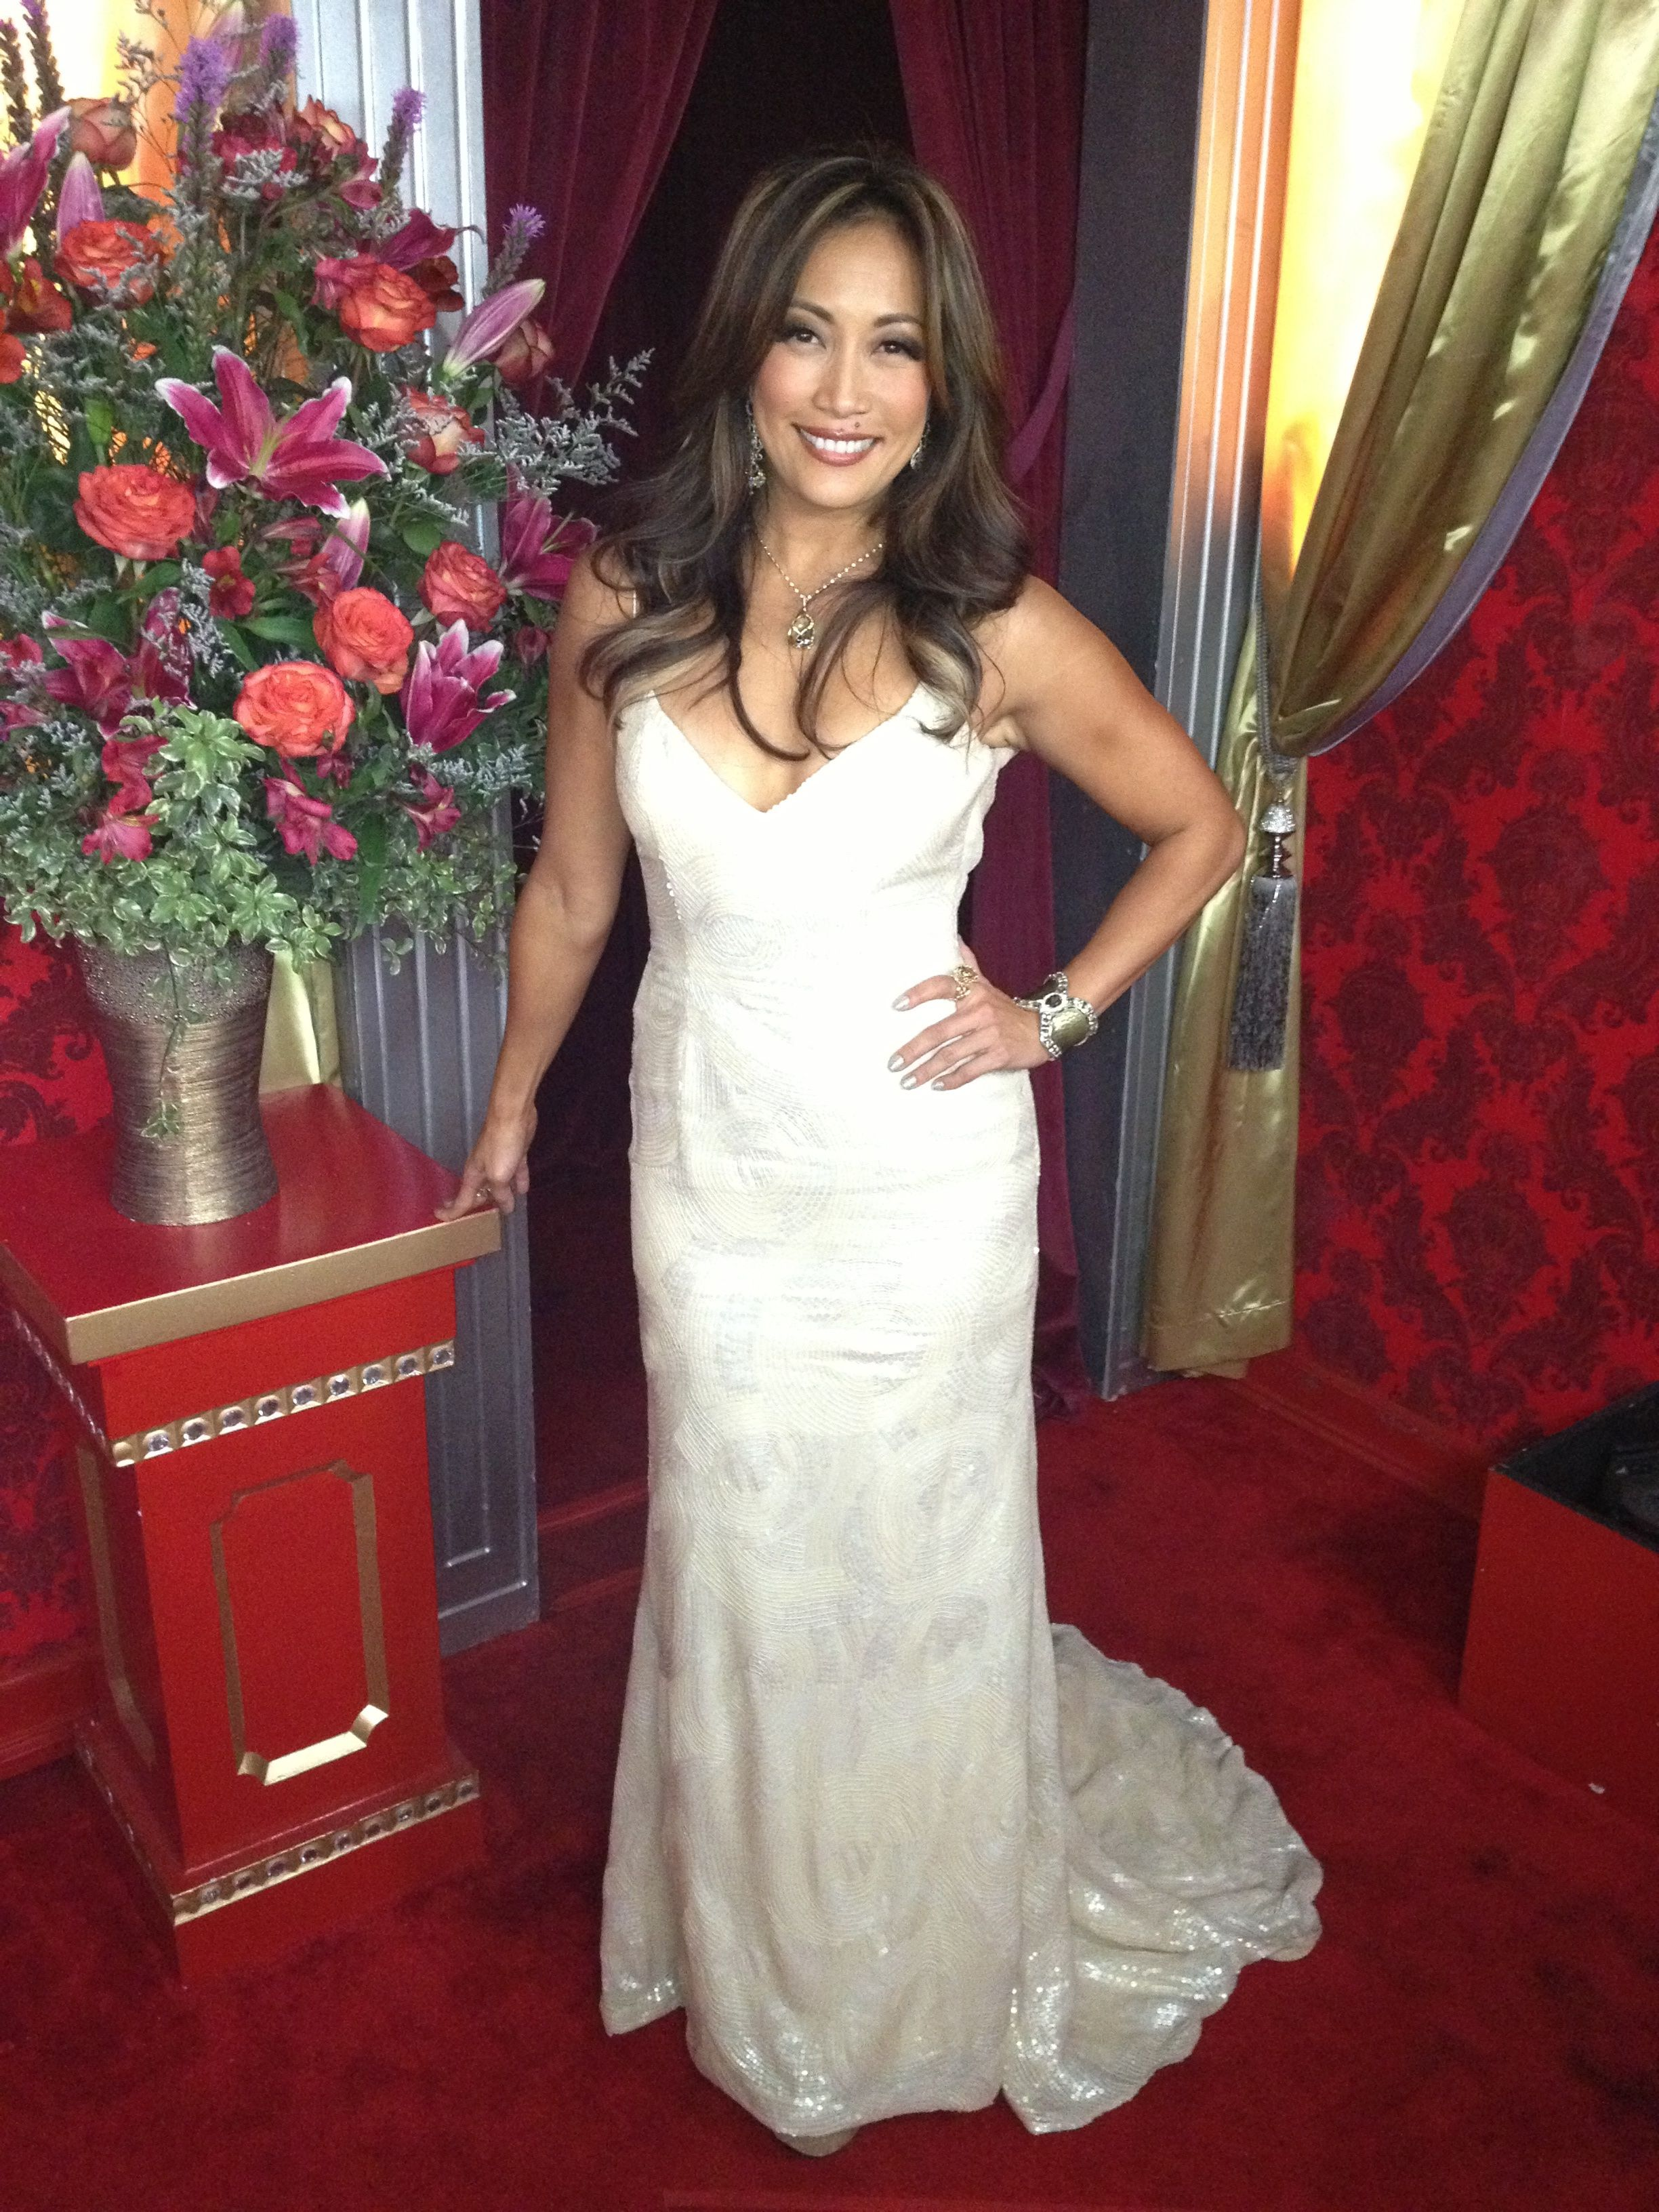 Carrie Ann Inaba Wedding.Week 10 Finale Episode November 26th Of Dancing With The Stars